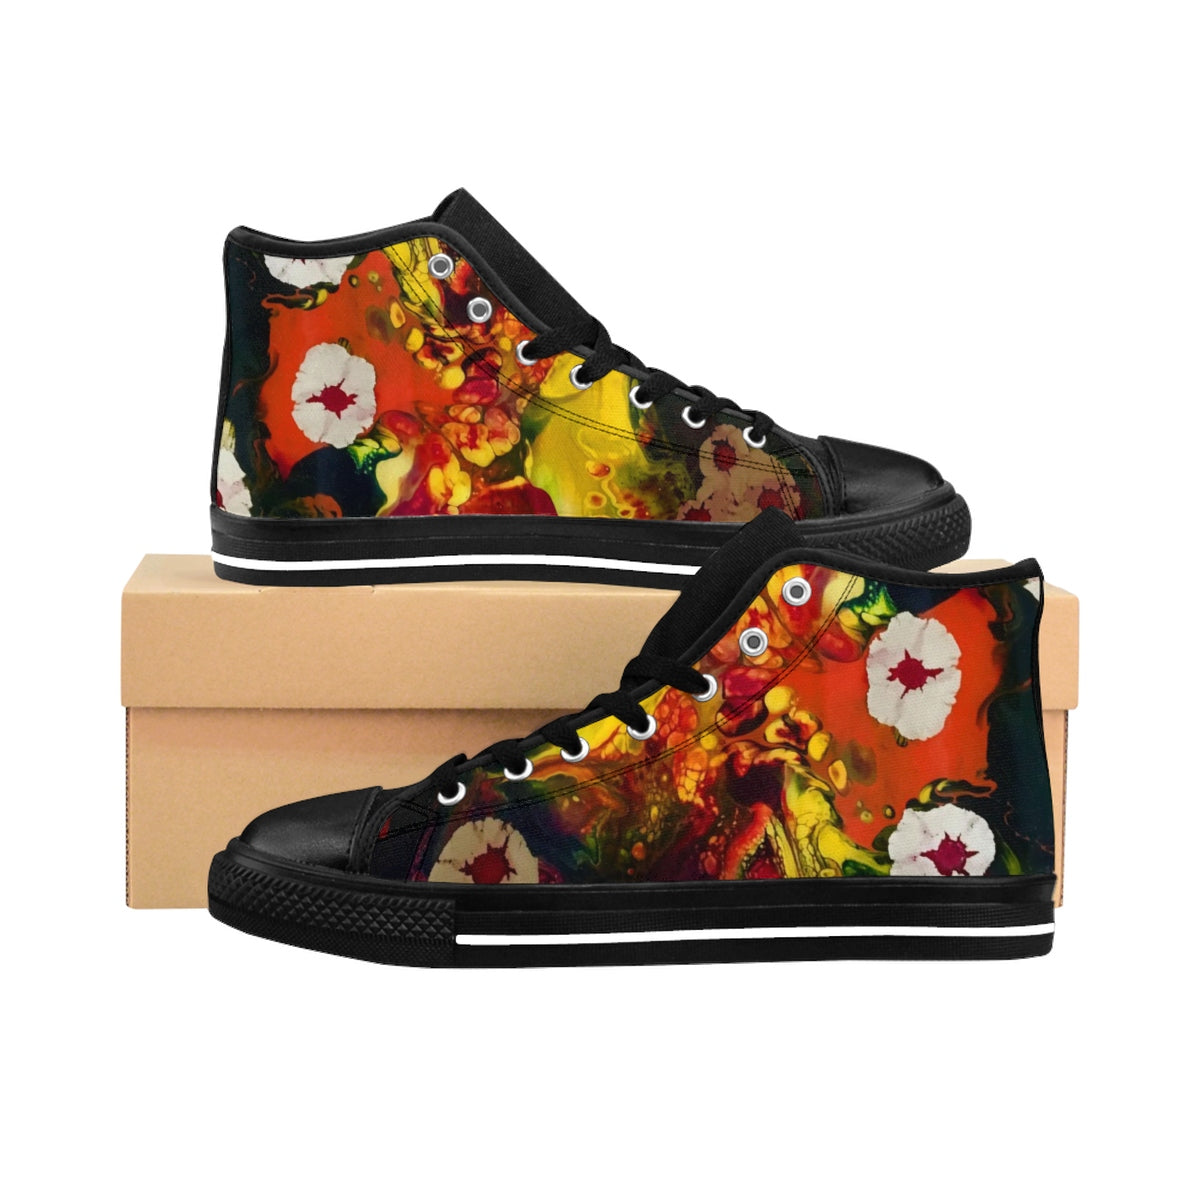 Floating Budding Blooms Women's High-top Sneakers